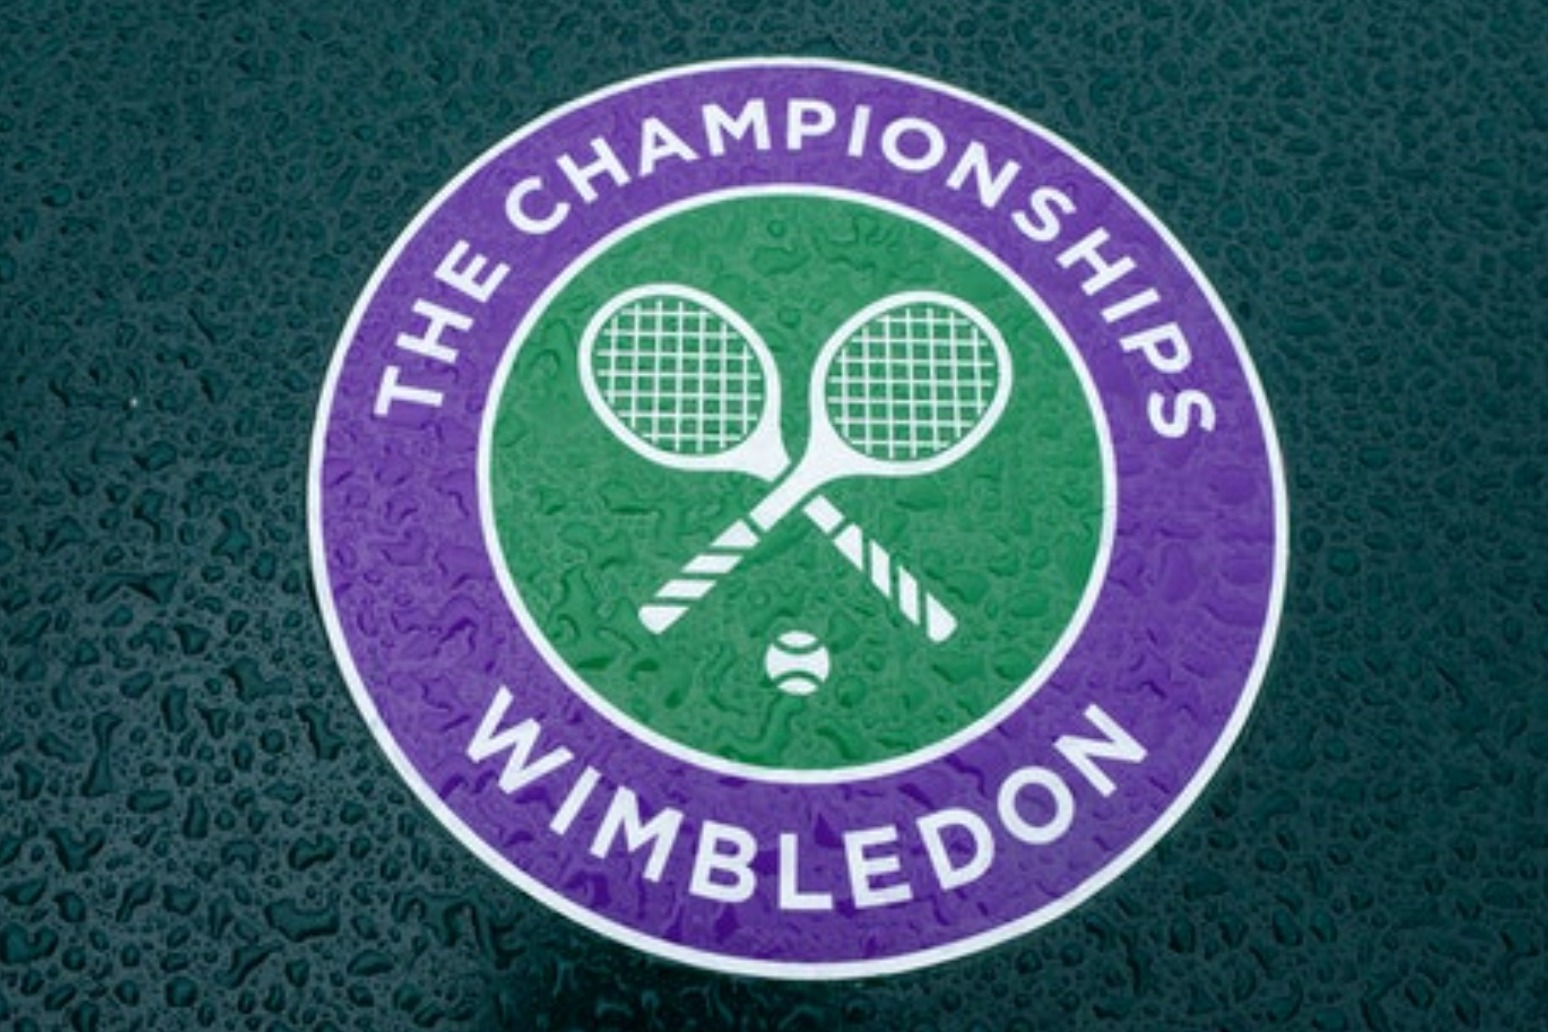 Wimbledon set to go ahead in 2021 even if fans are not permitted